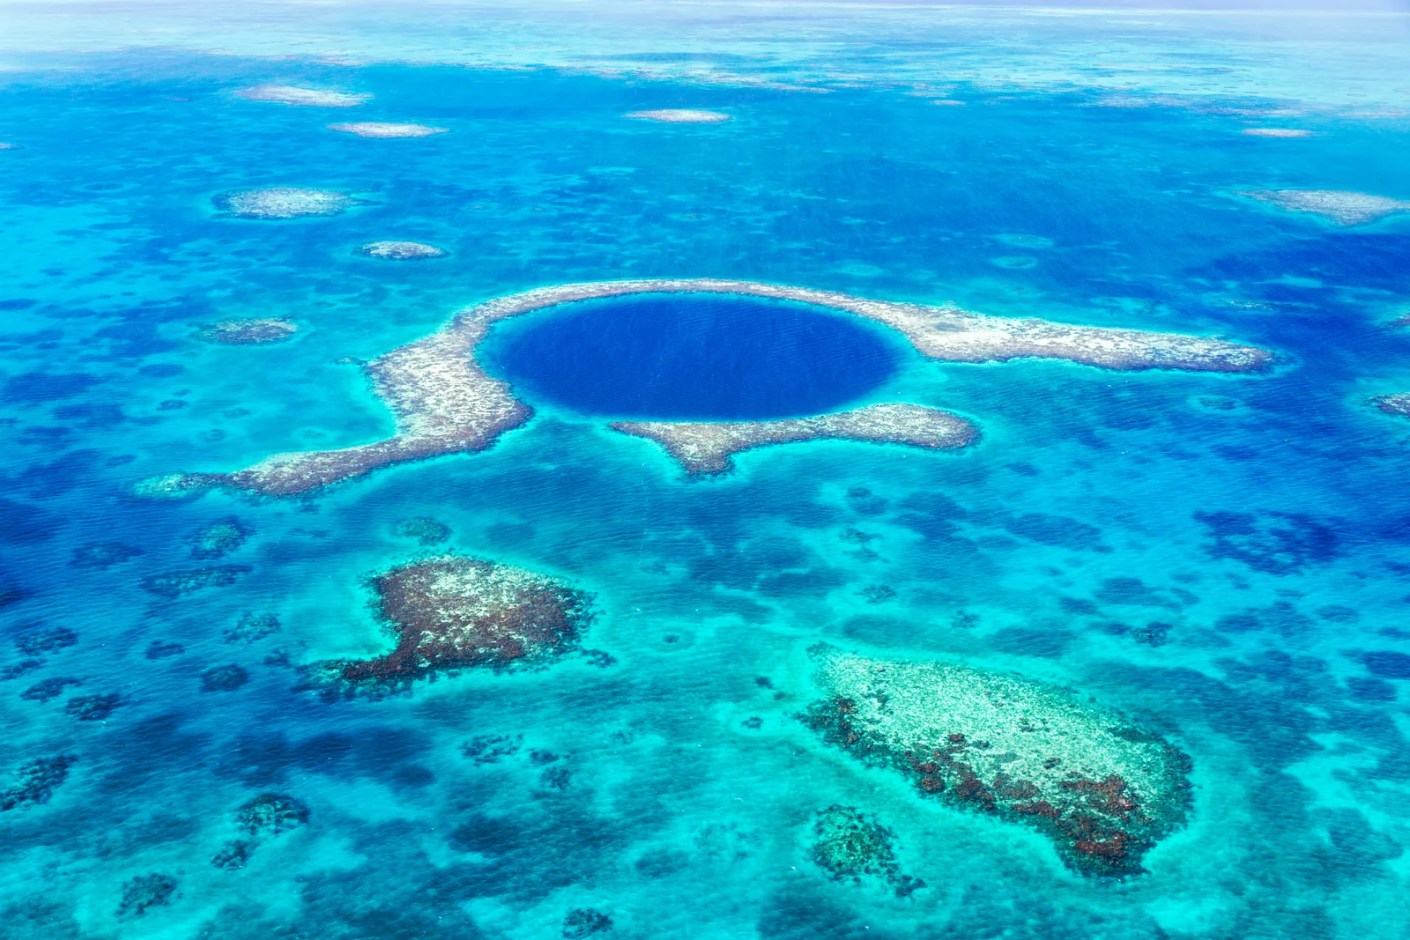 Aerial photo of the Blue Hole, Lighthouse reef, Belize. (Photo via Getty Images)